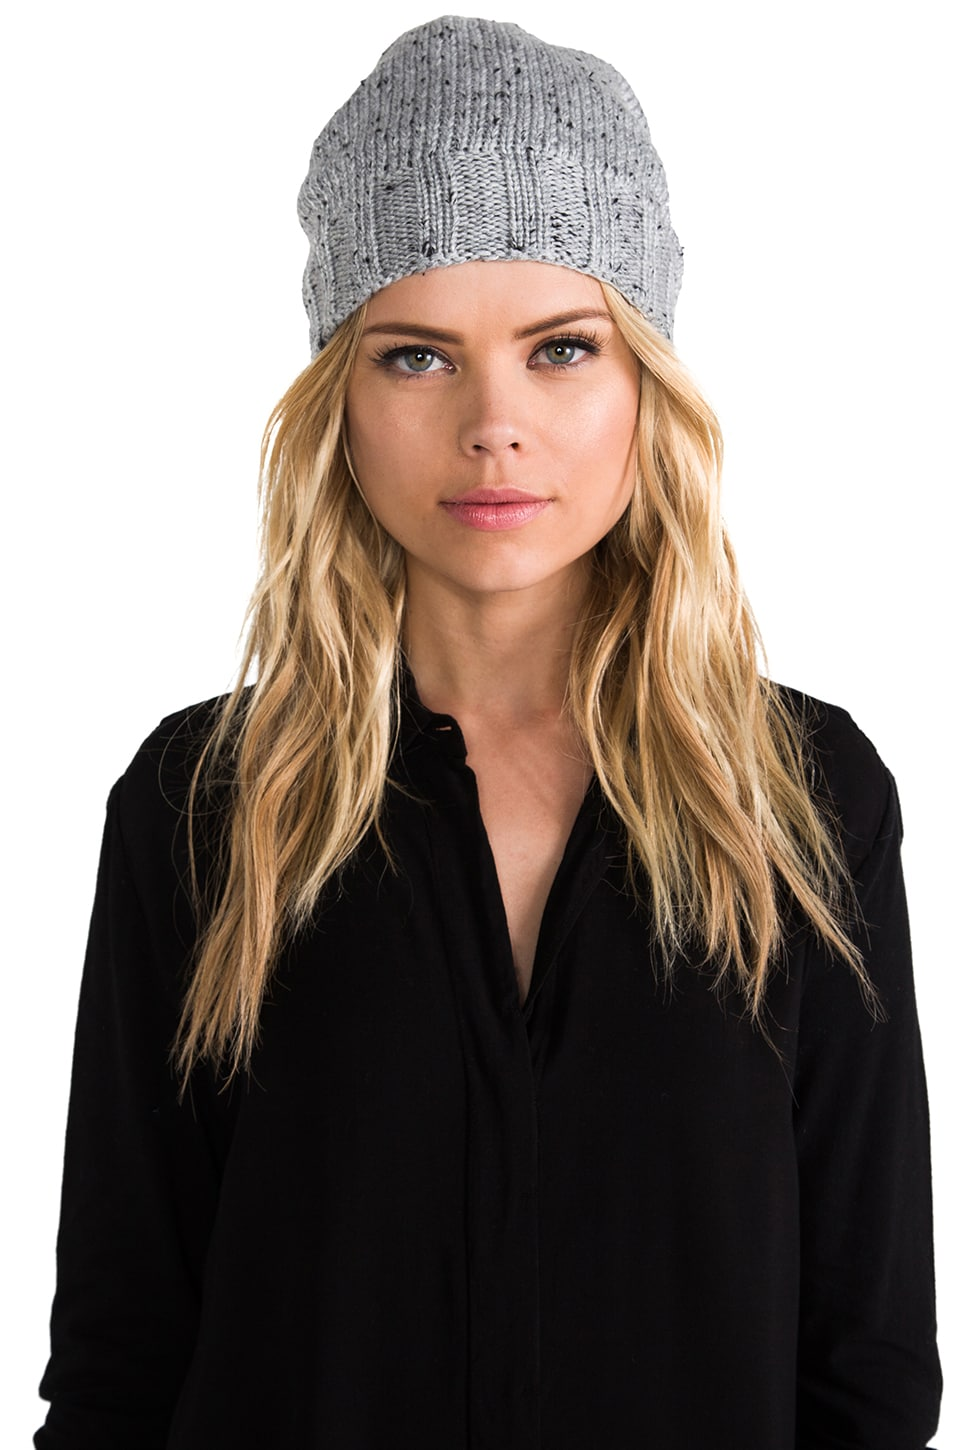 Plush Extra Slouchy Knit Beanie in Speckled Heather Grey